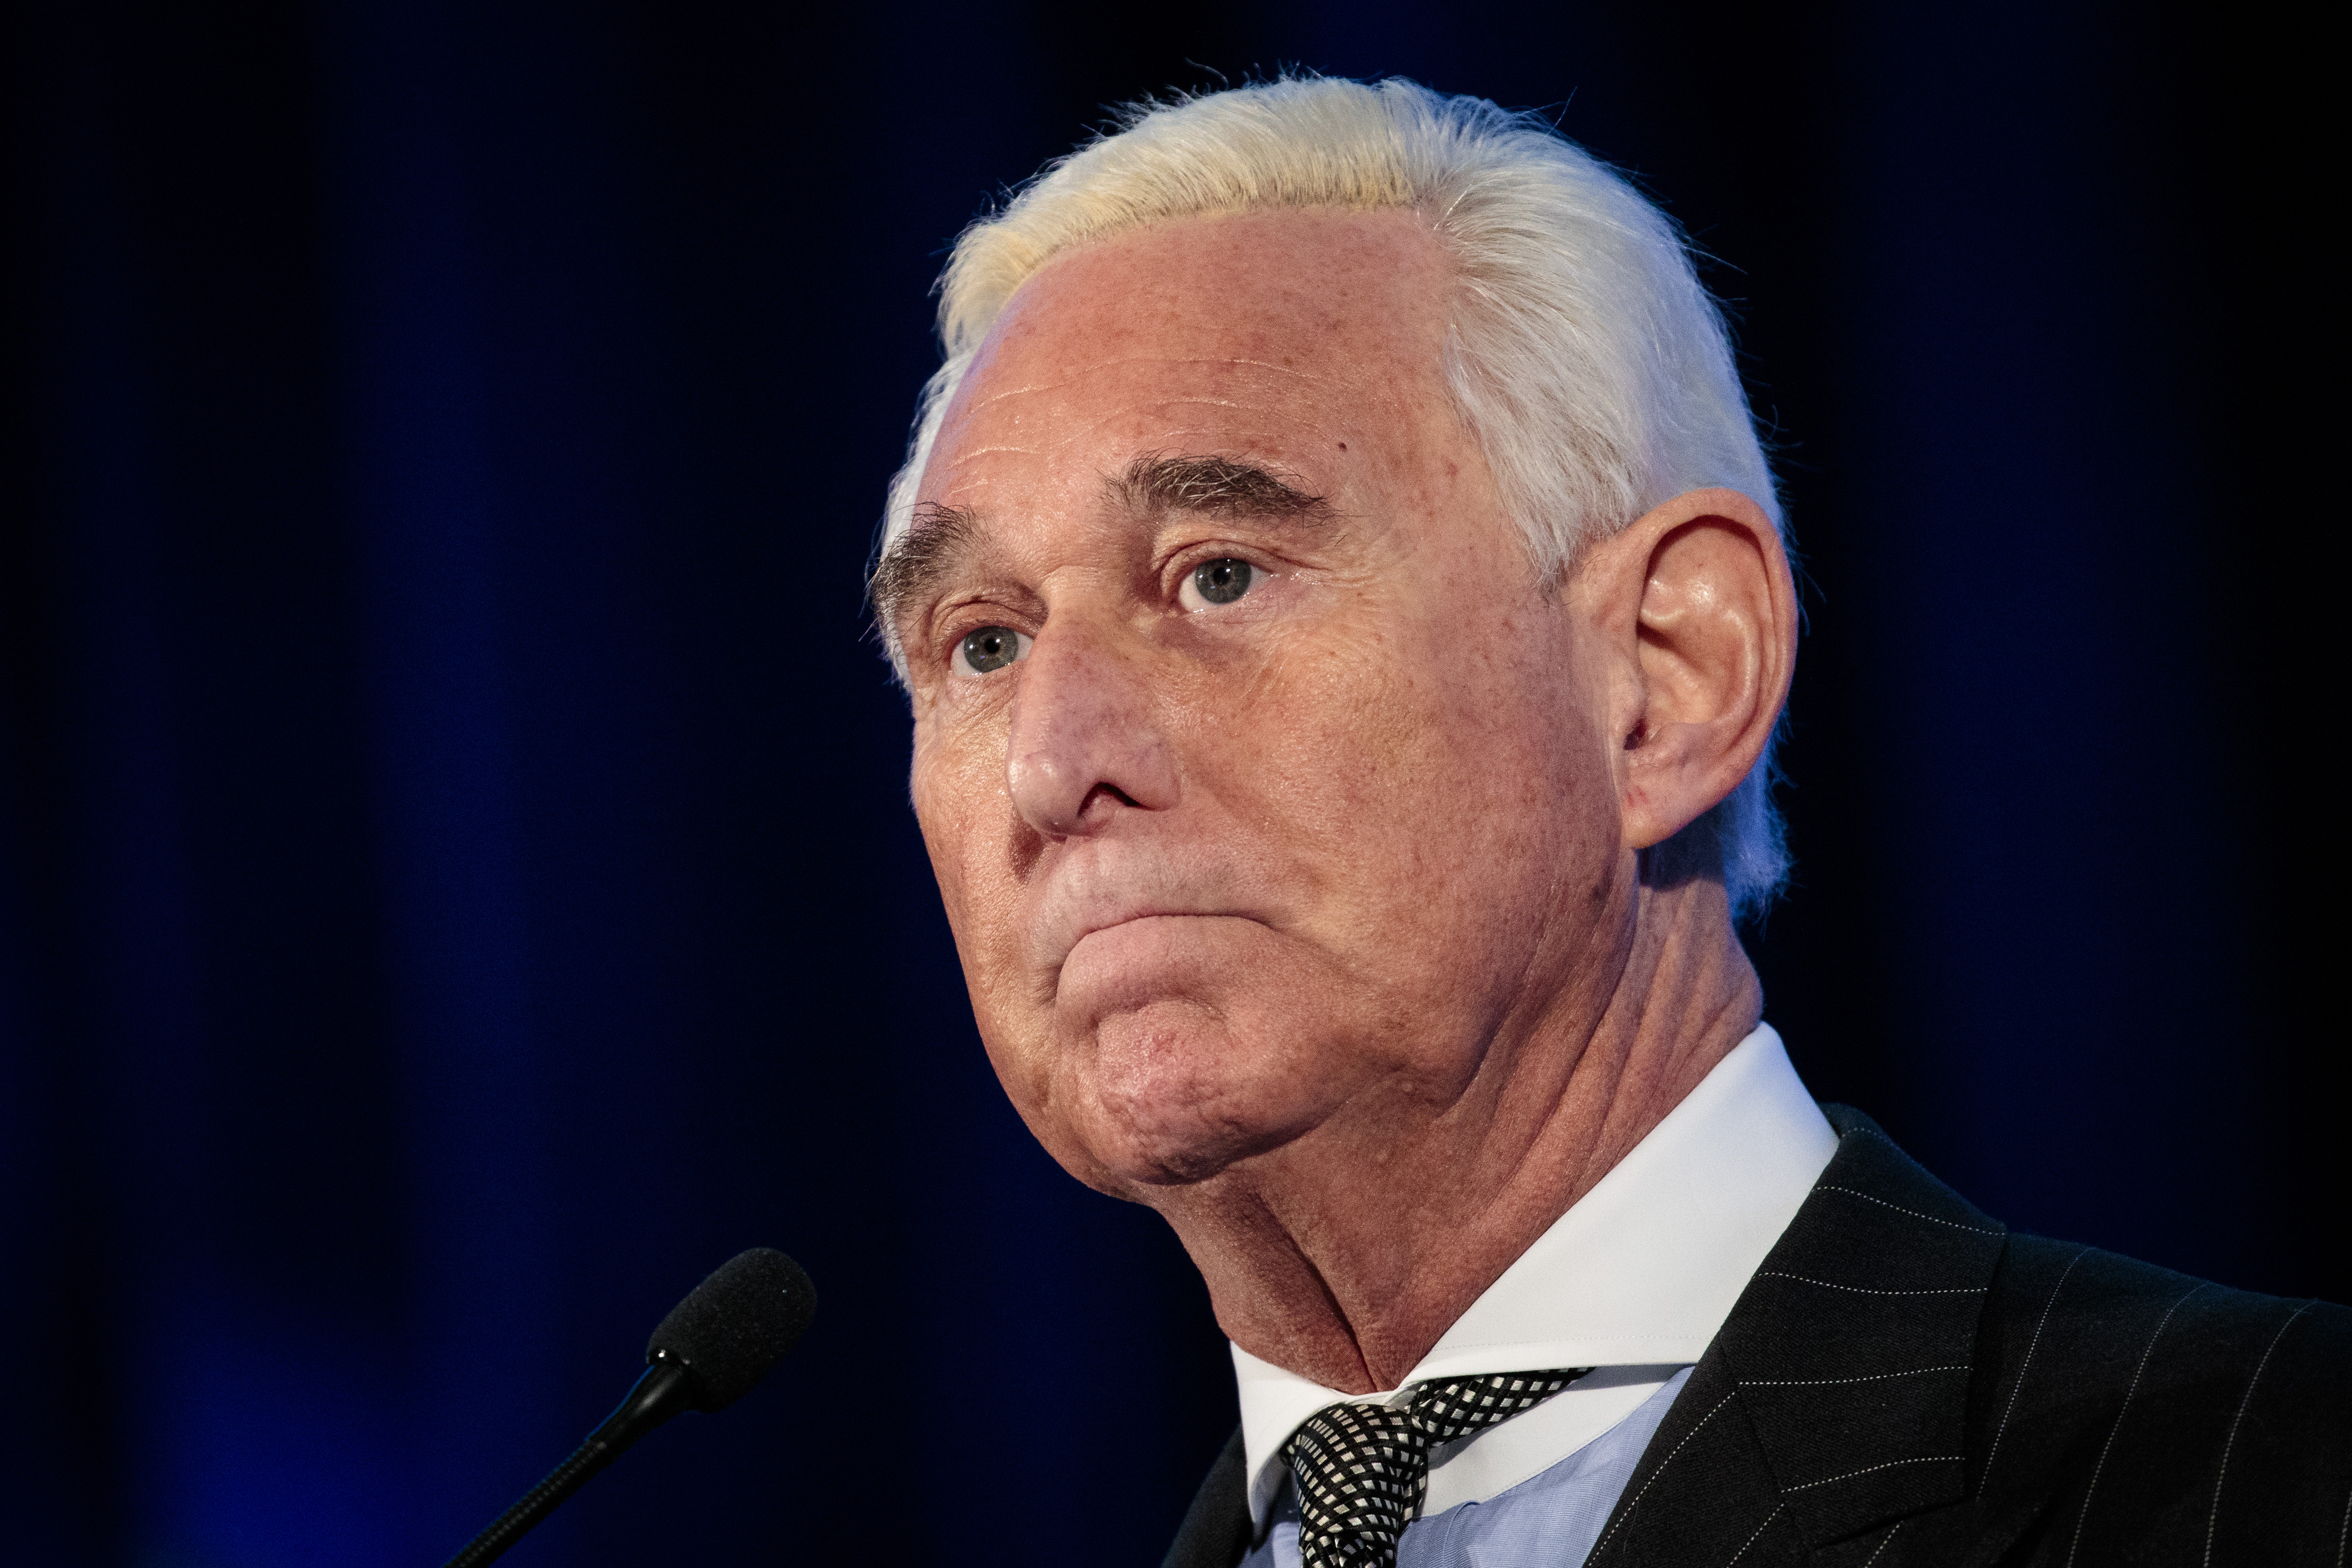 Political strategist Roger Stone pauses while speaking at the American Priority Conference, Dec. 6, 2018 in Washington, DC. Stone recently told Congressional committees that he will invoke his Fifth Amendment rights in order to not testify in response to committee requests for documents and testimony.